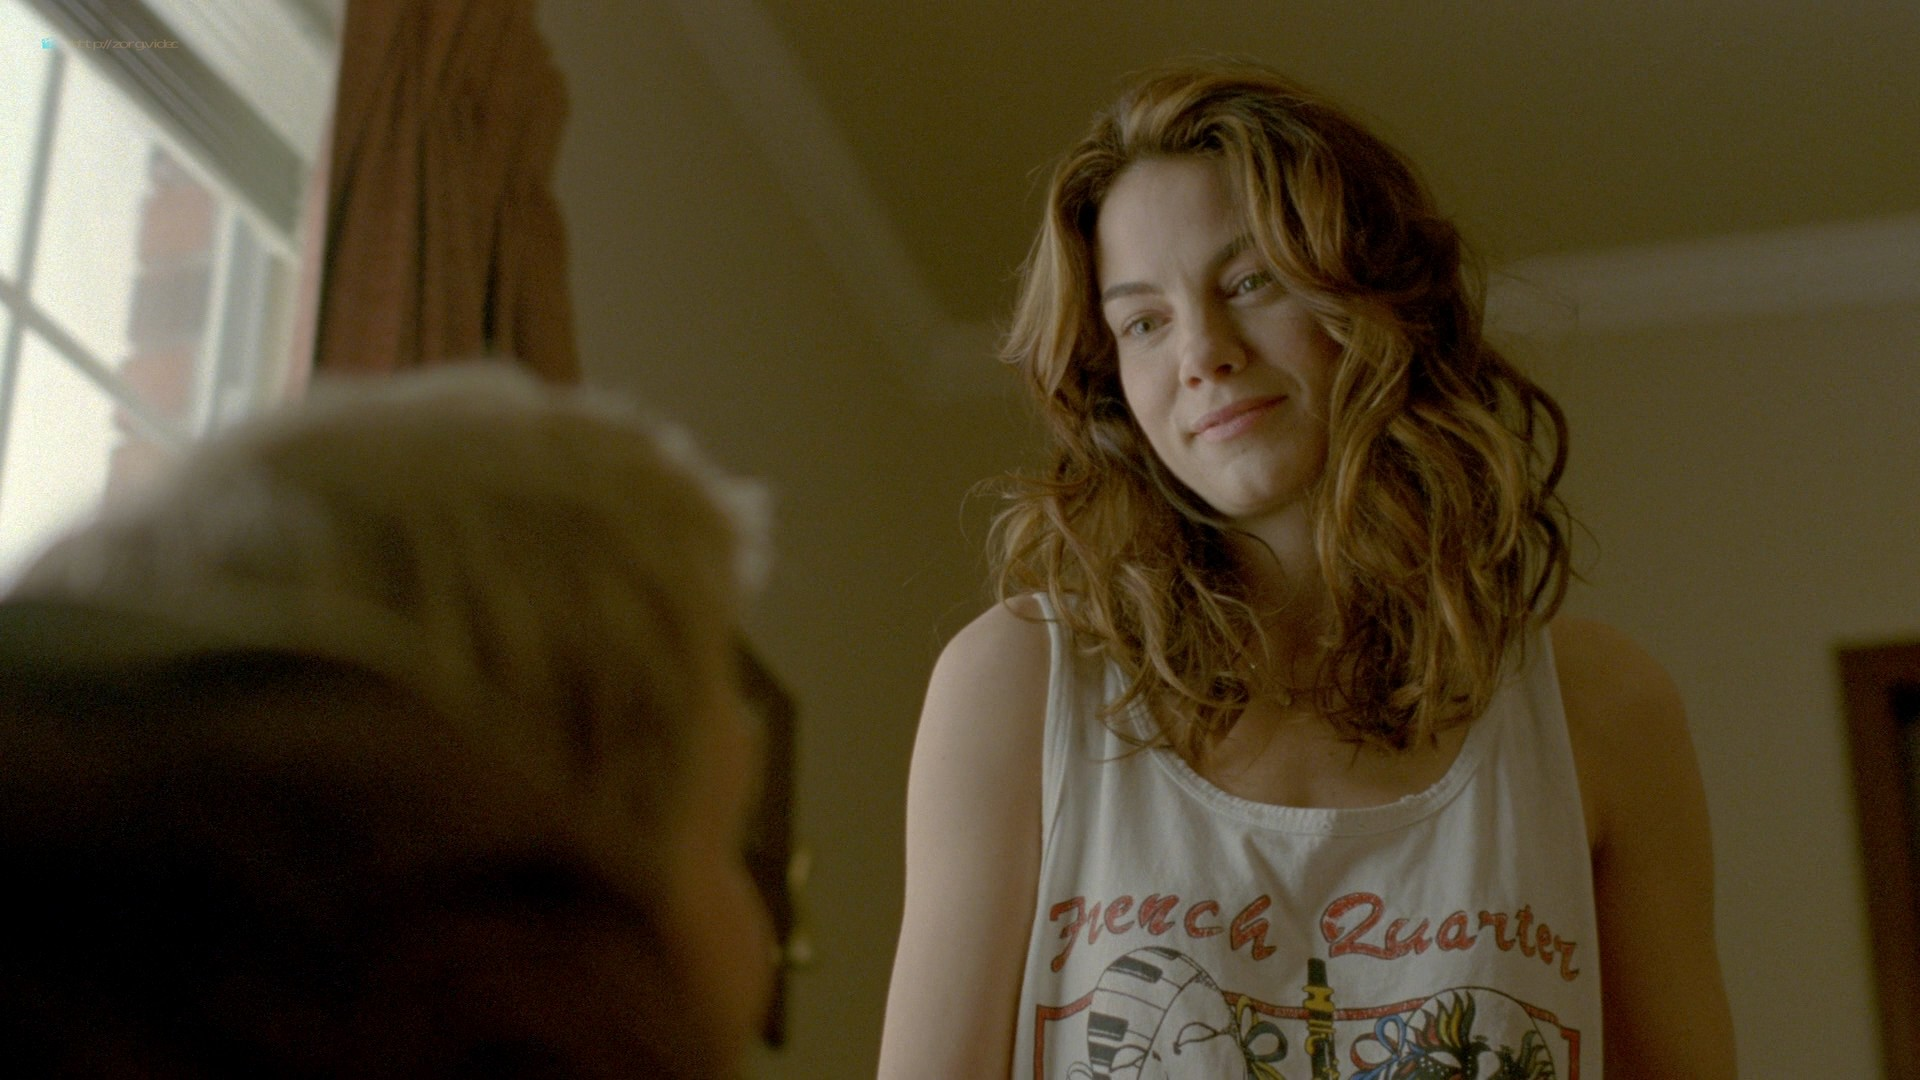 Michelle Monaghan nude brief topless and sex - True Detective (2014) S01 HD 1080p BluRay (13)